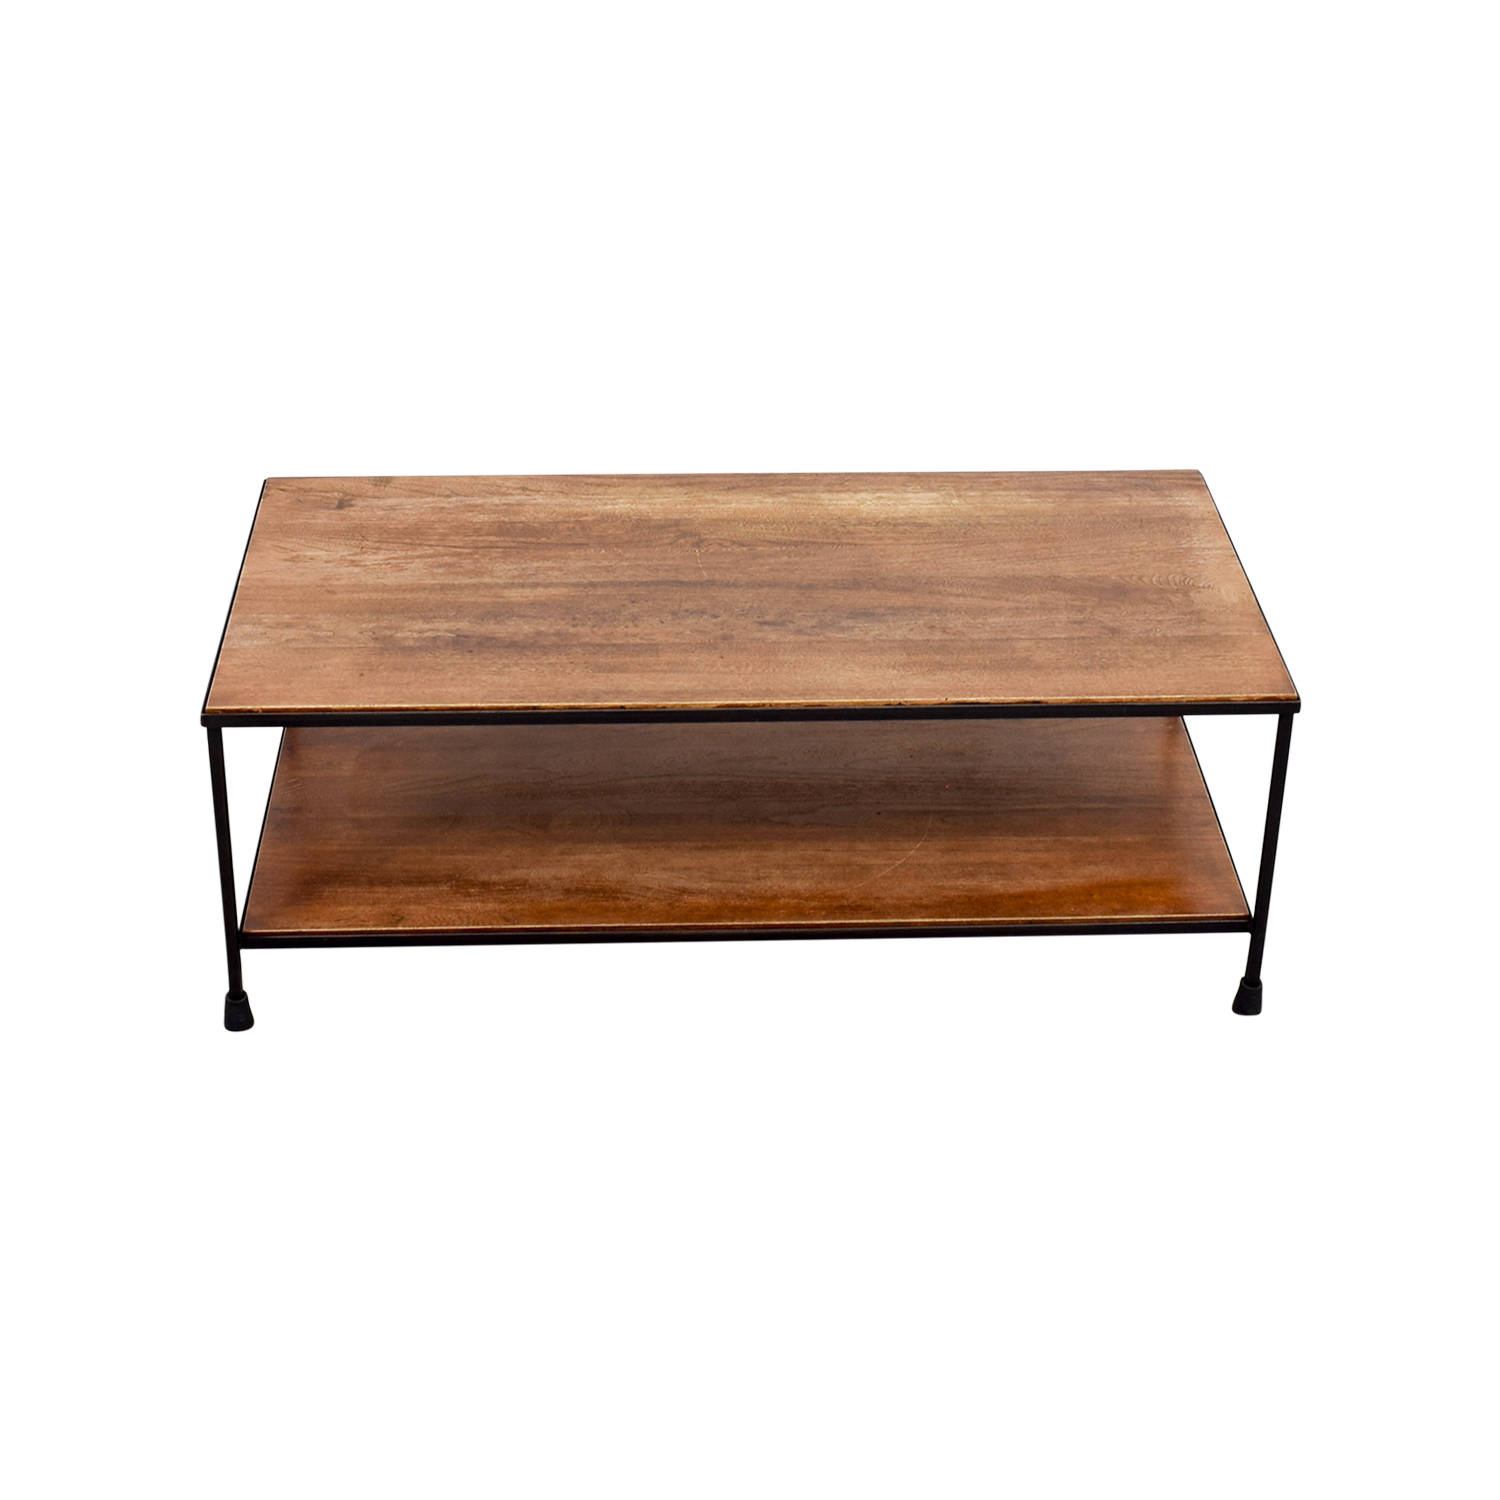 Pottery Barn Wood and Metal Coffee Table Pottery Barn